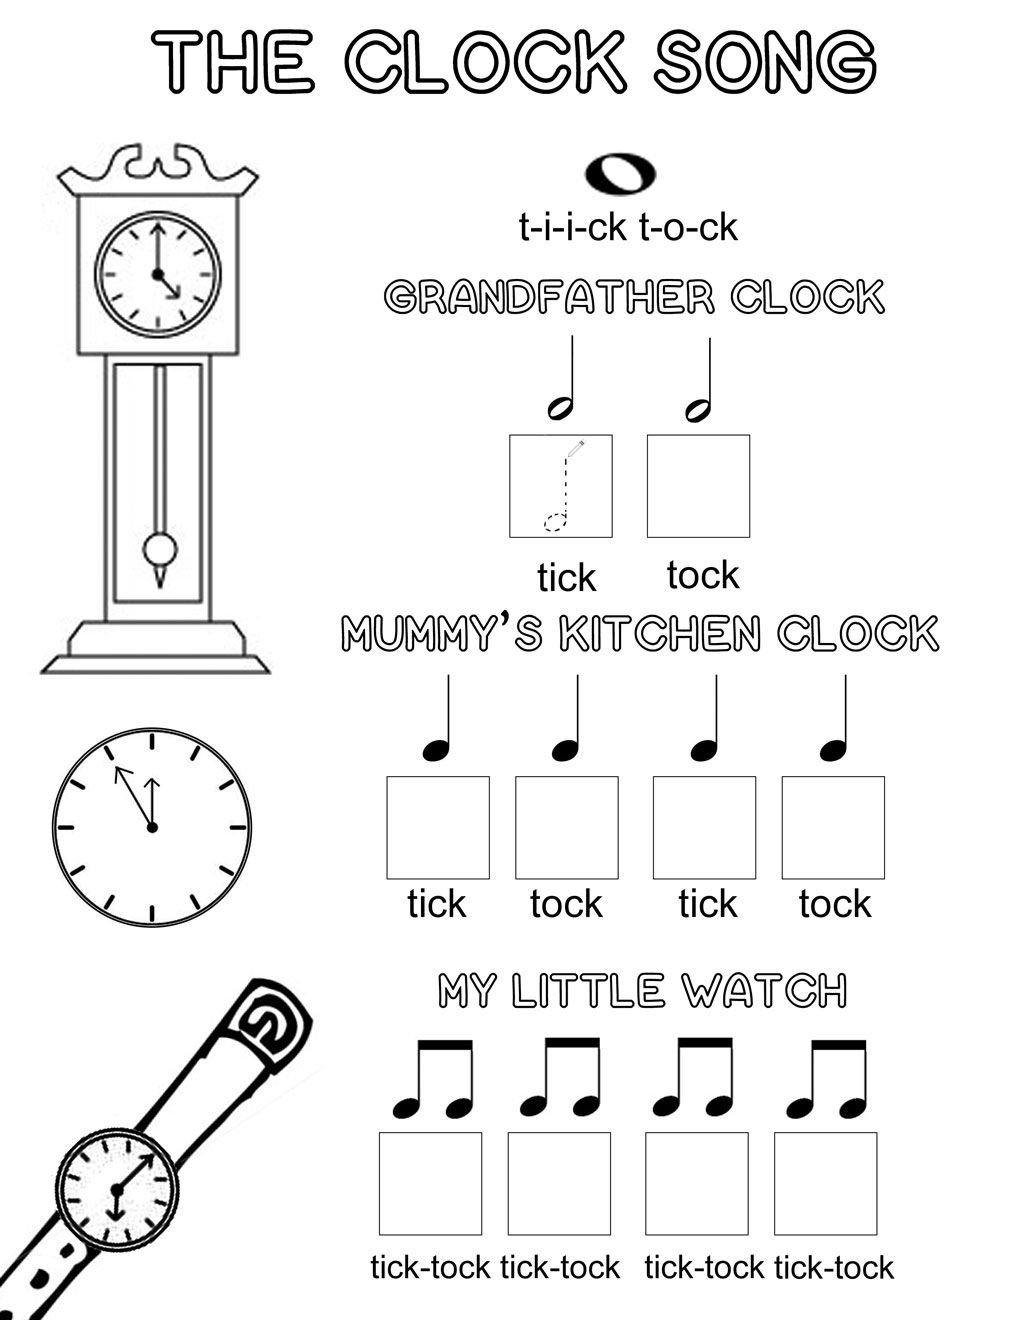 Beginner Piano Lesson Worksheets the Clock song An Easy Way to Learn Musical Note Values